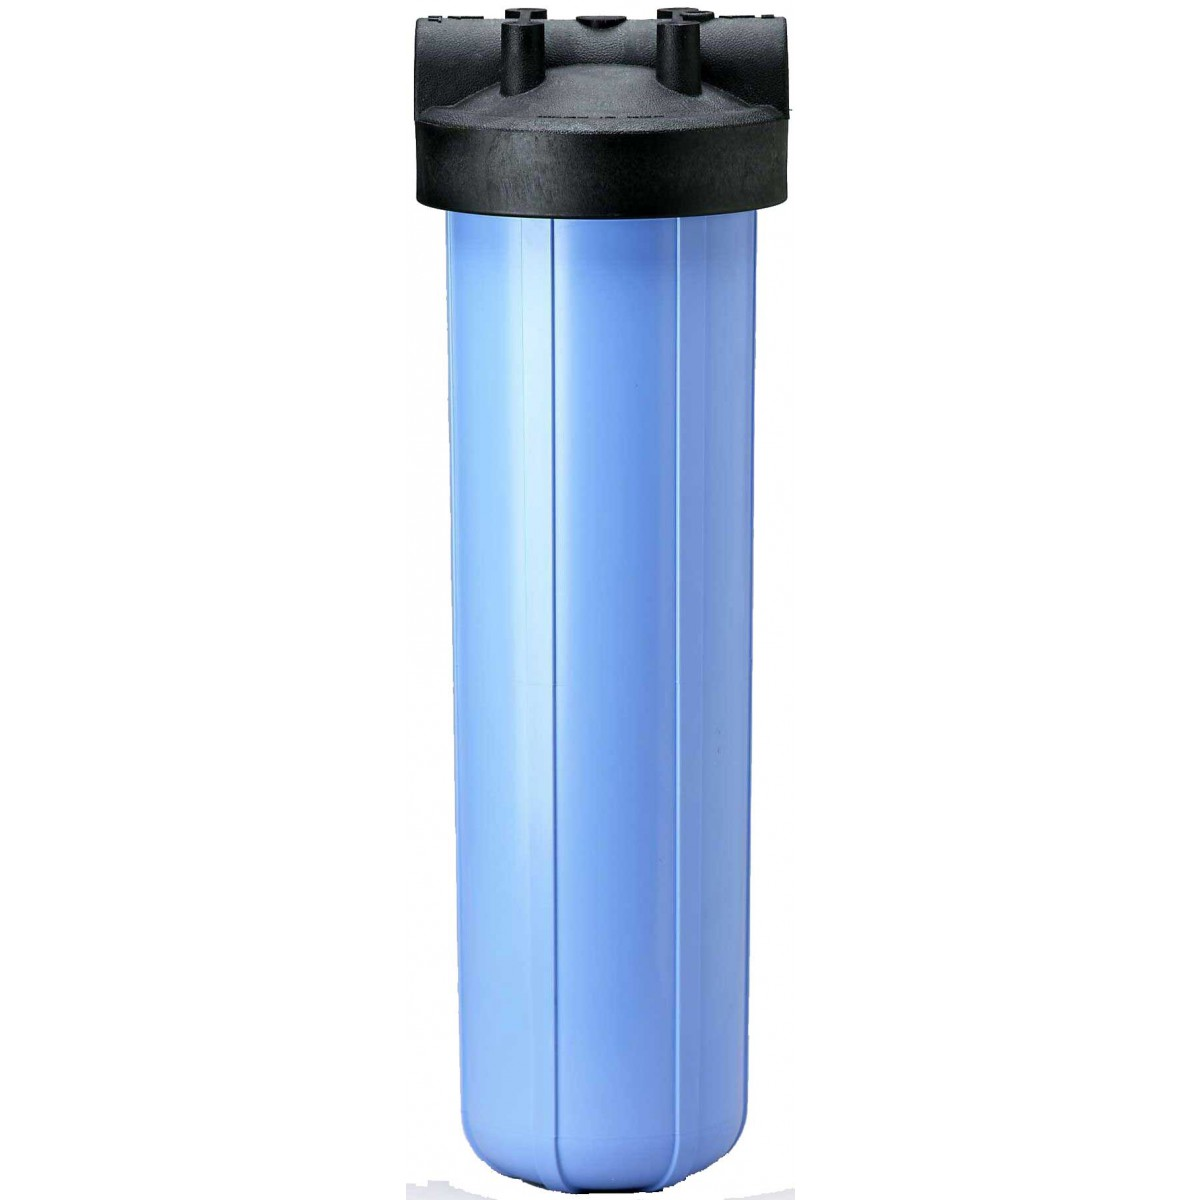 Big Water Filter Systems American Plumber W2015 Pr Big Blue Water Filter Housing 152017